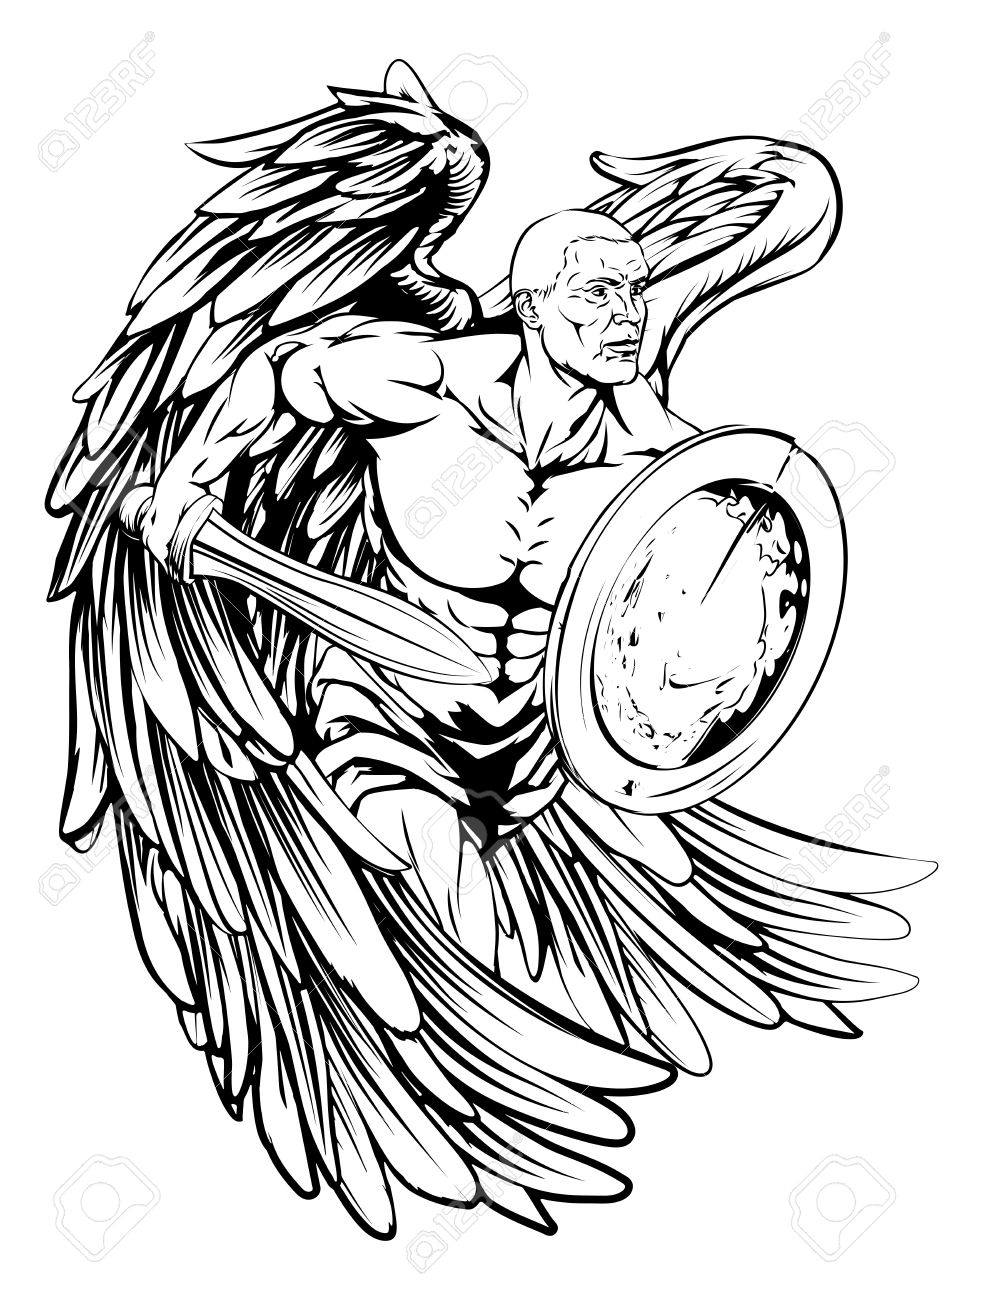 983x1300 An Illustration Of A Warrior Angel Character Or Sports Mascot